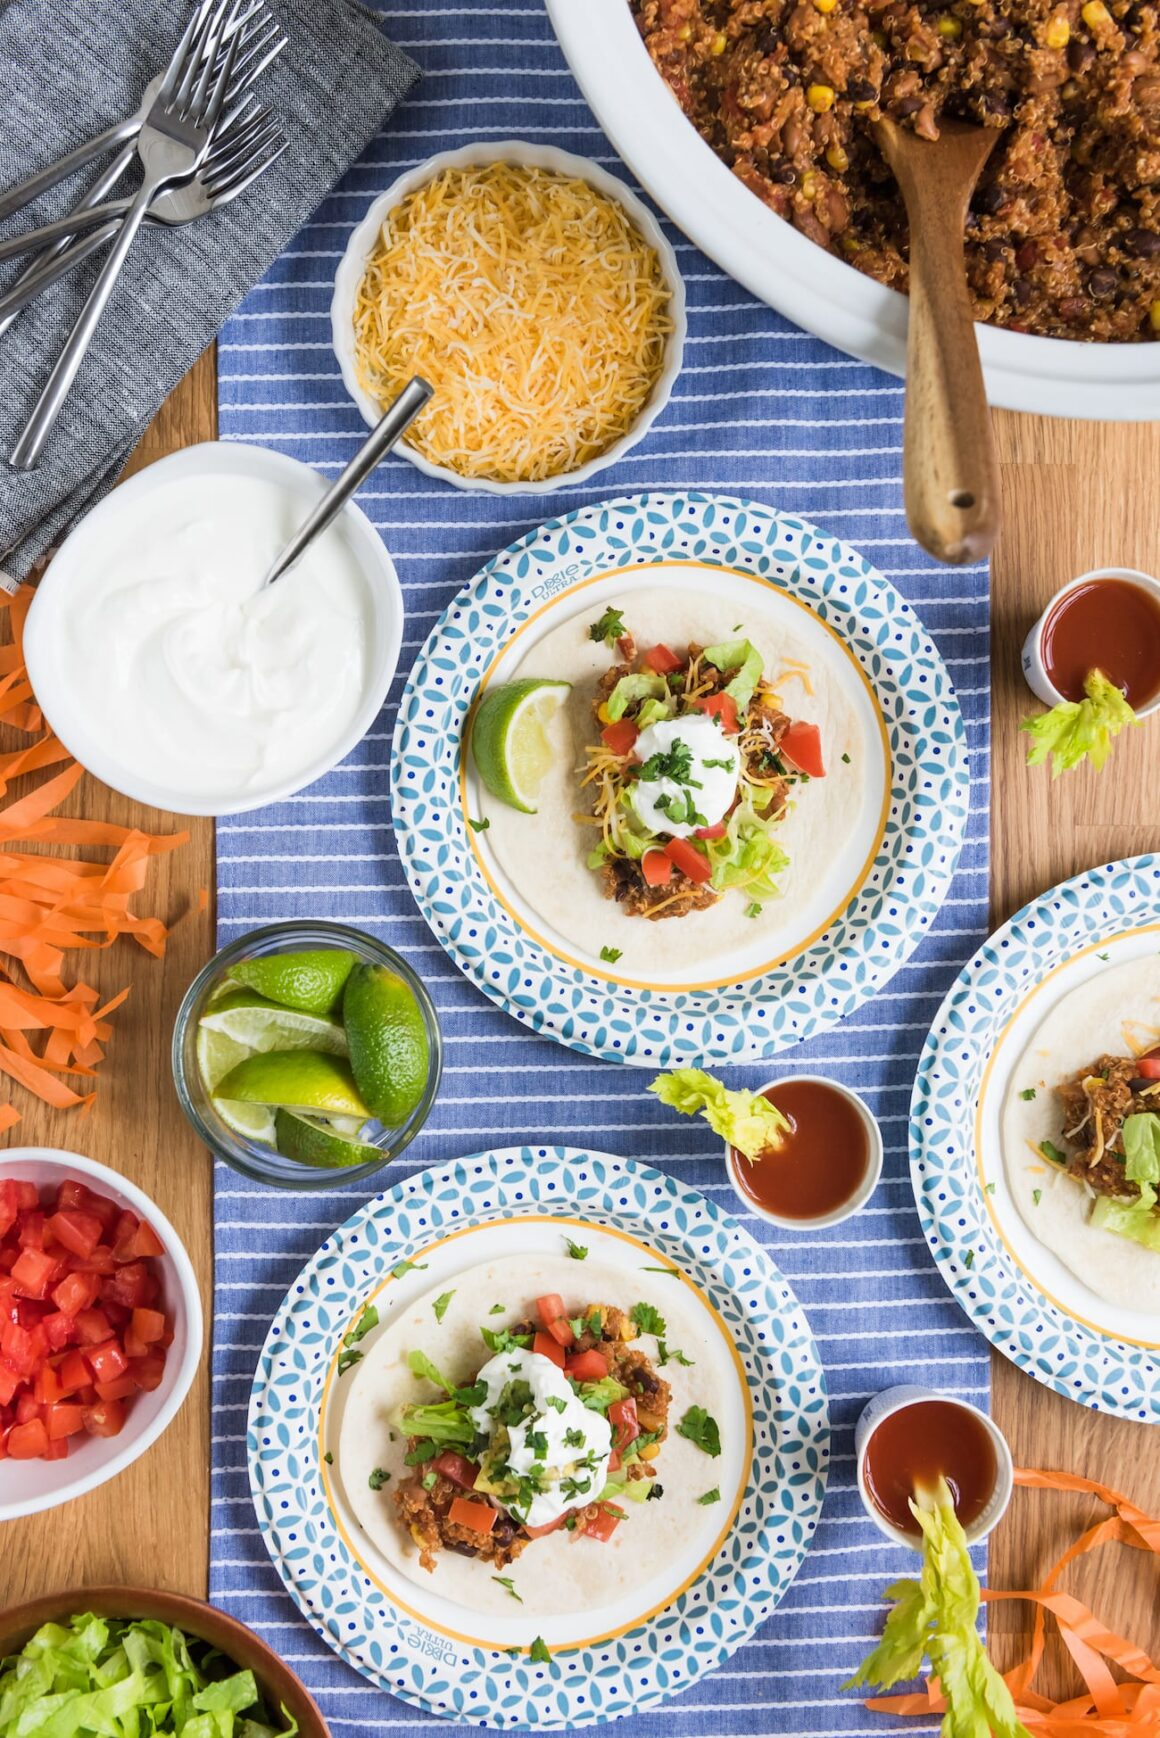 Easy Dinner Recipes: Slow Cooker Tacos